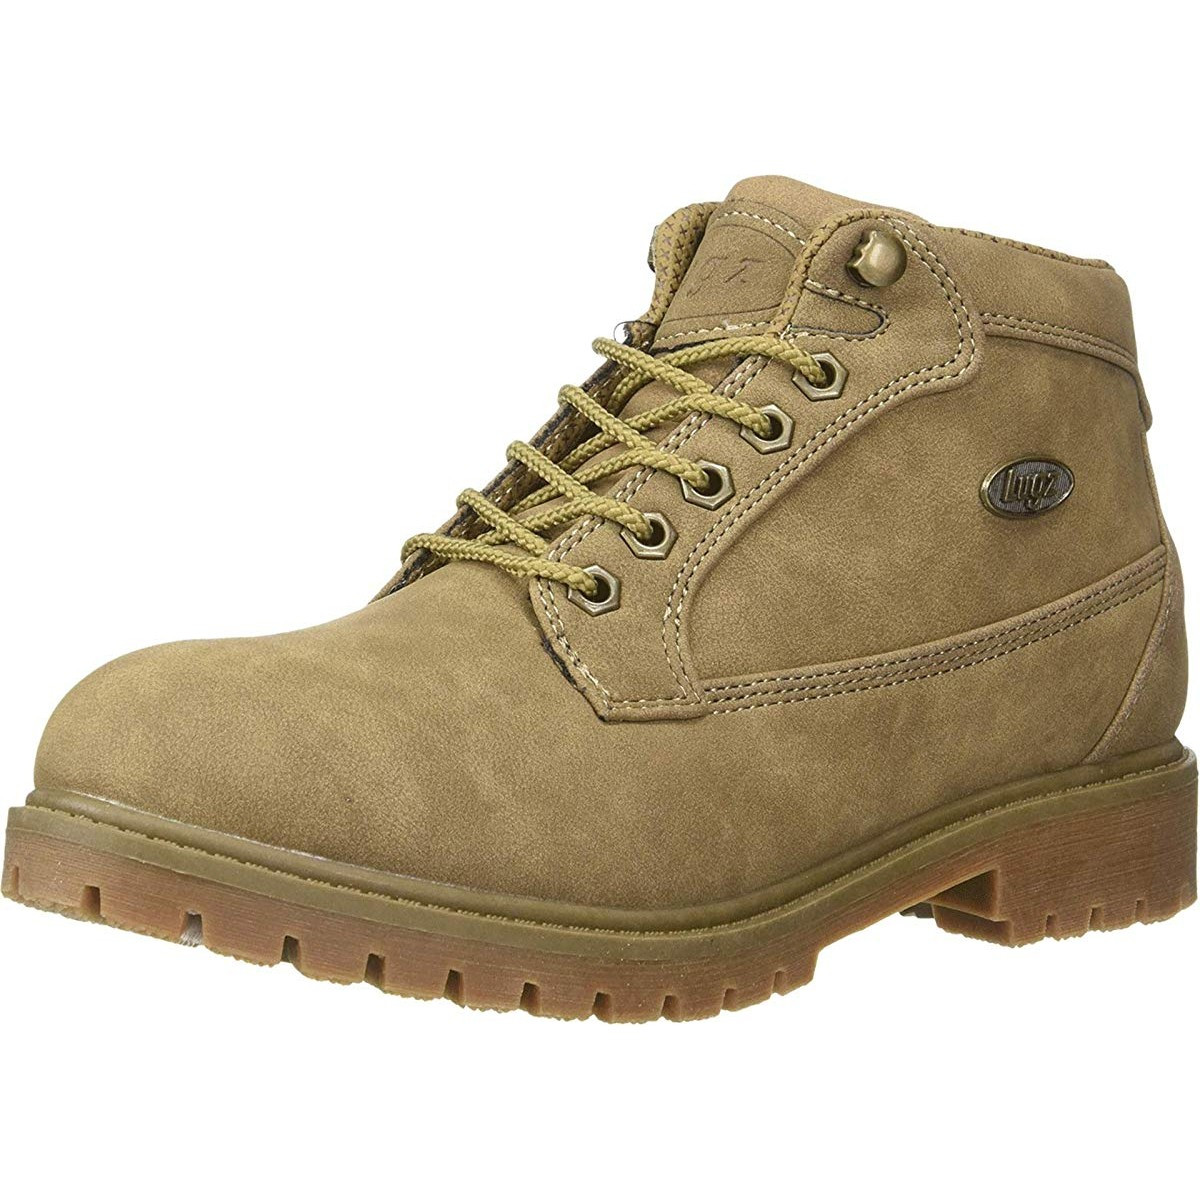 Ботинки Lugz Mantle Mid Tan - Оригинал, фото 1